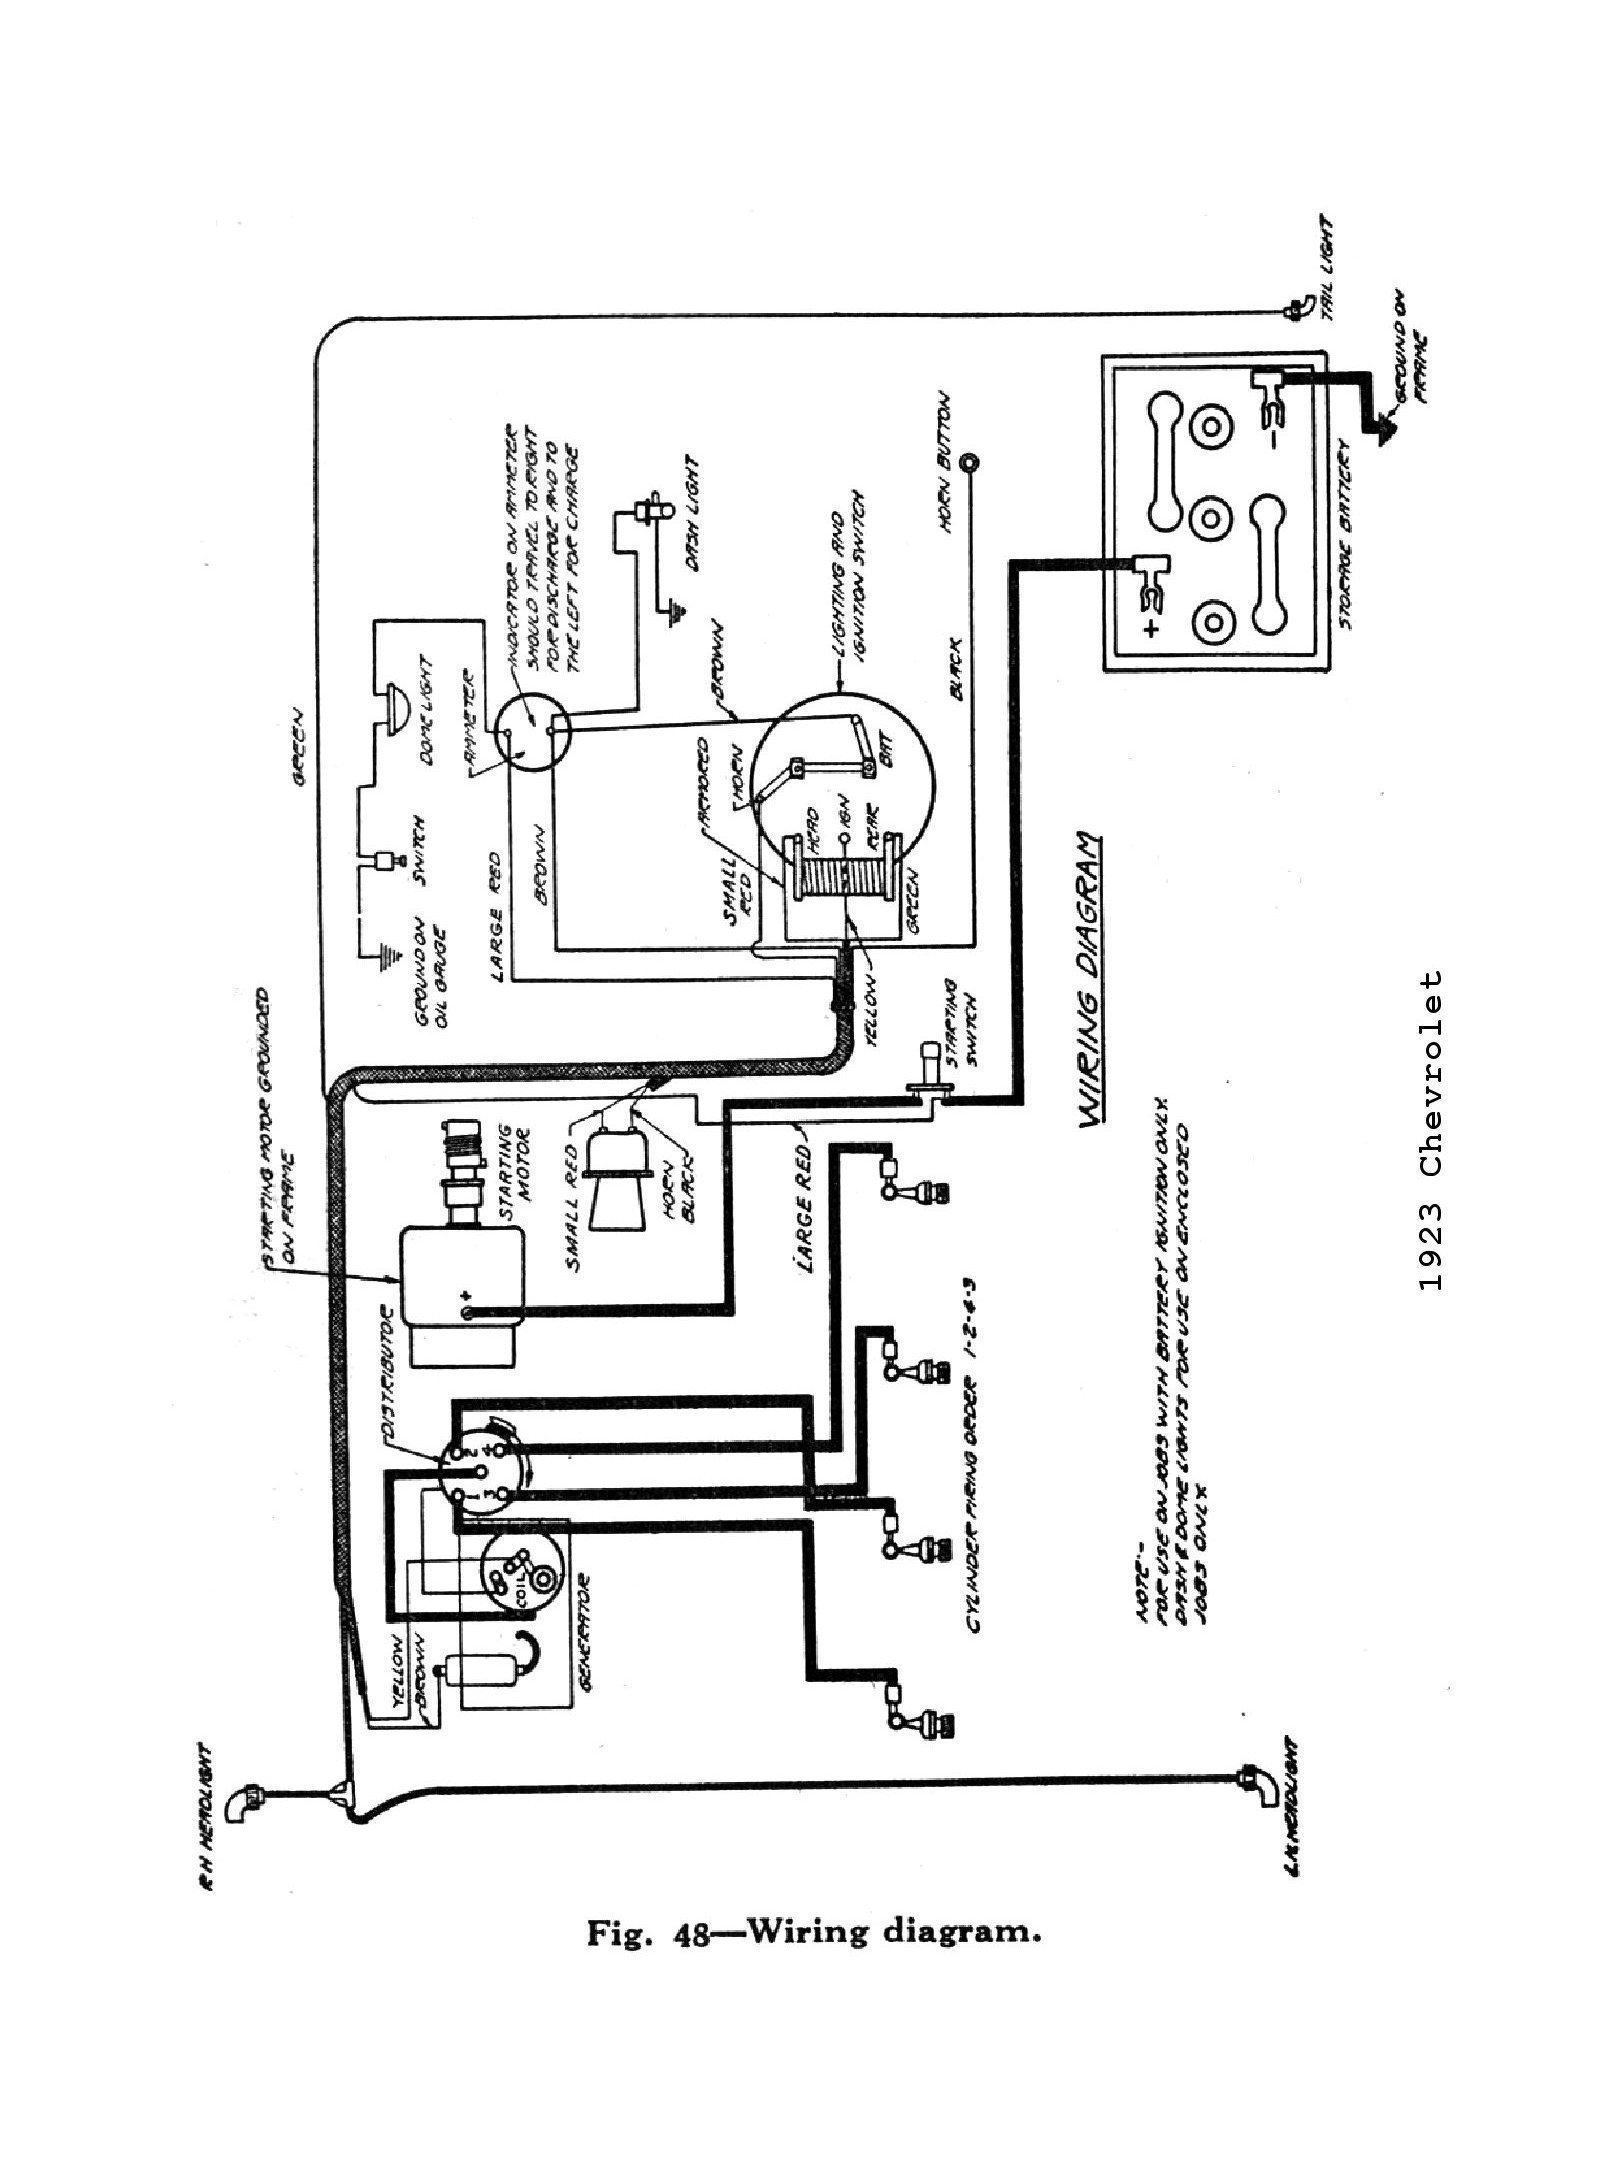 1984 Chevy Truck Fuse Box Diagram 1984 Chevy Wiring Harness Diagram Trusted  Wiring Diagram Of 1984